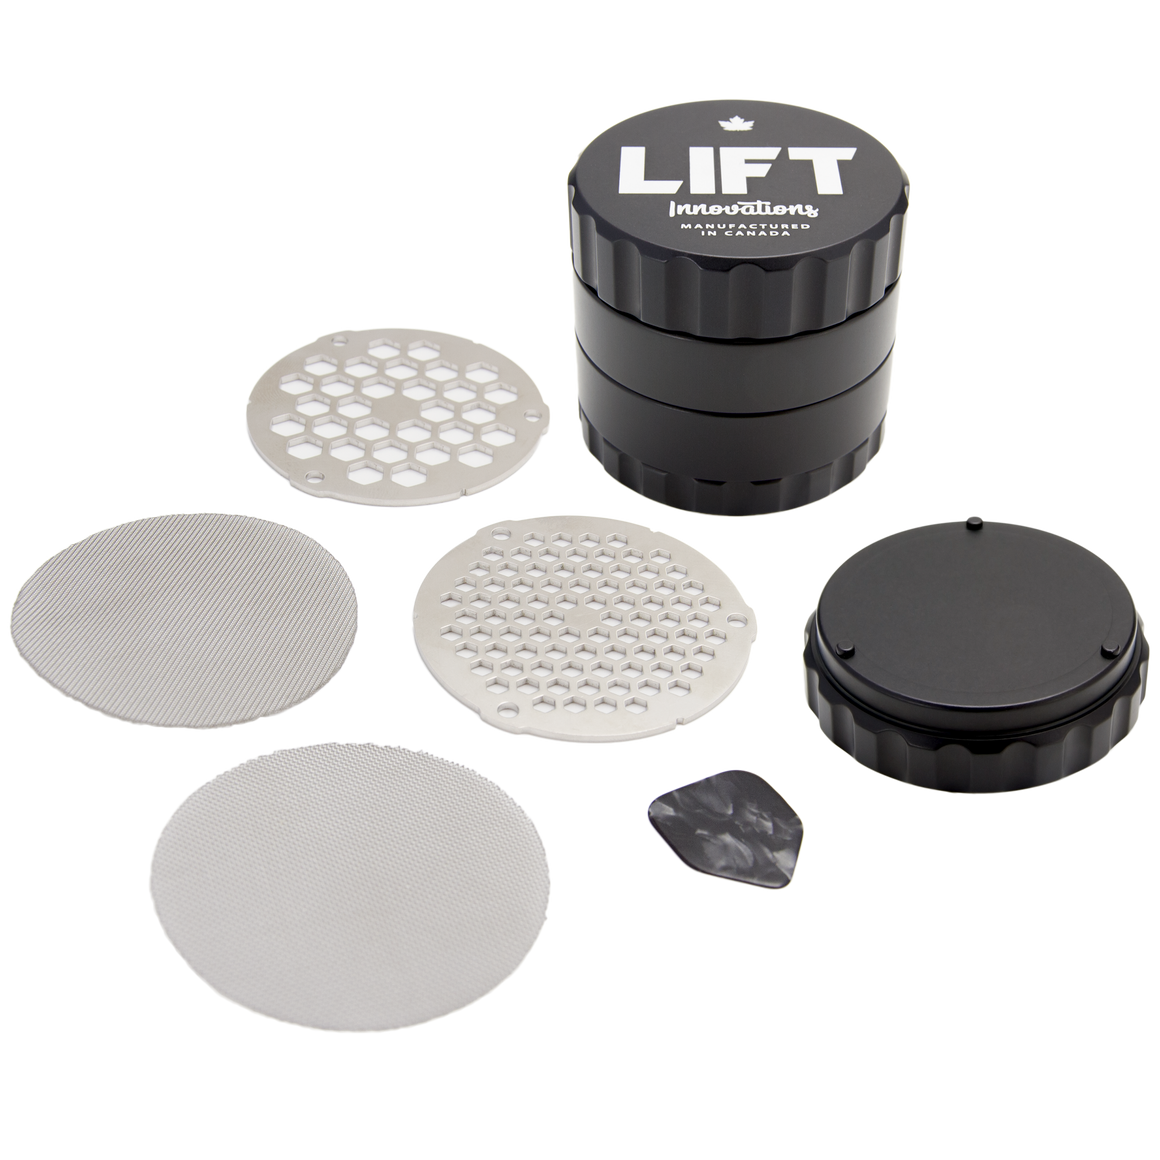 4 Piece BLACK Grinder with Accessories PRE-ORDER for shipping on July 15, 2020